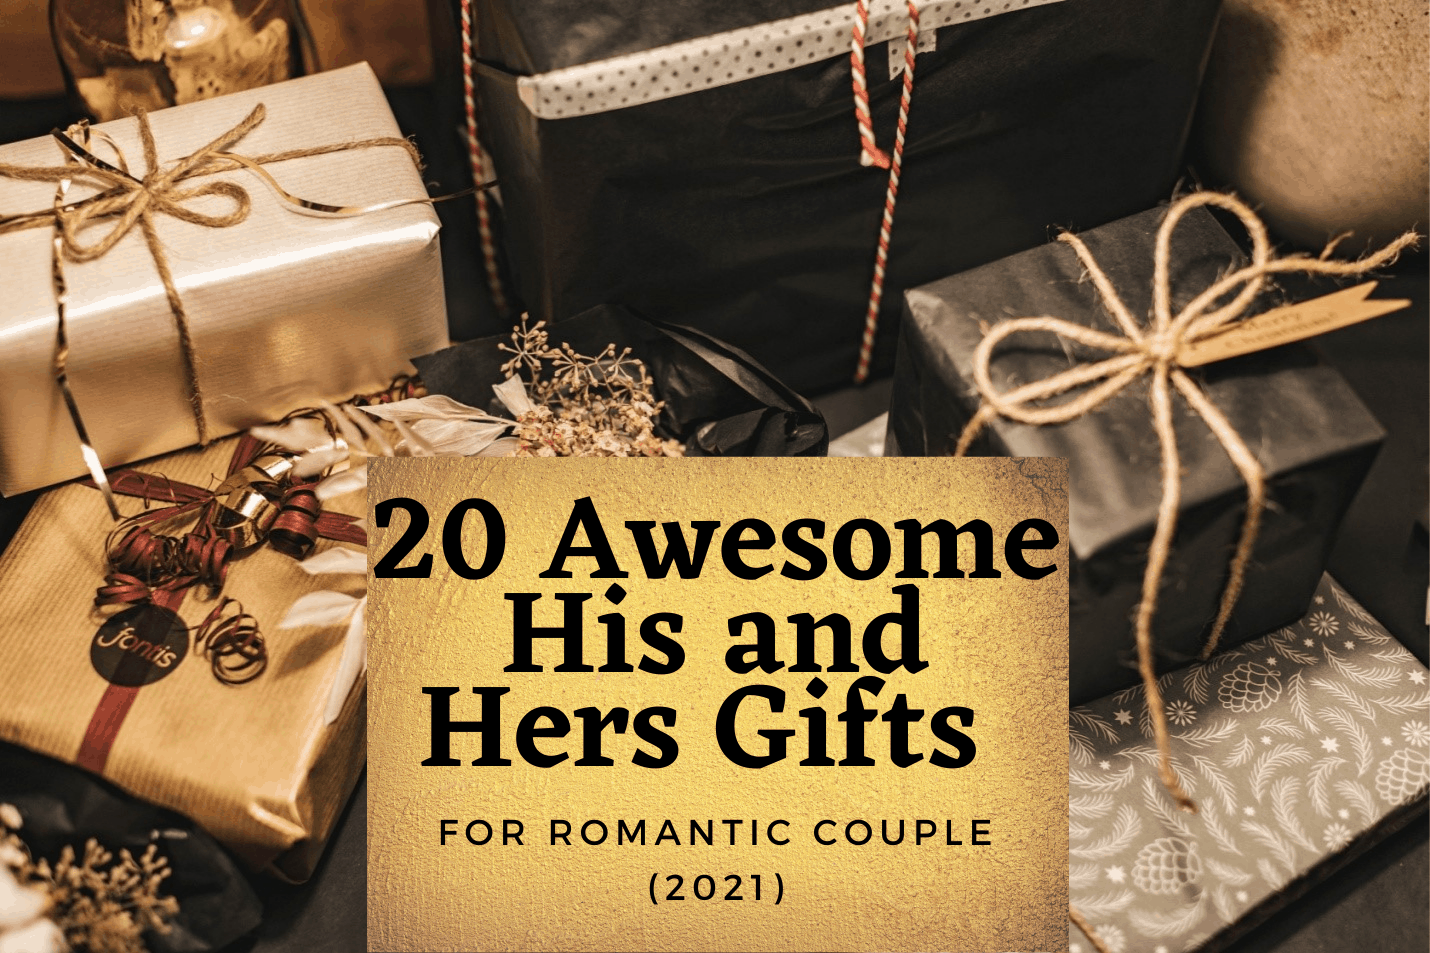 20 Awesome His and Hers Gifts For Romantic Couples (2021)